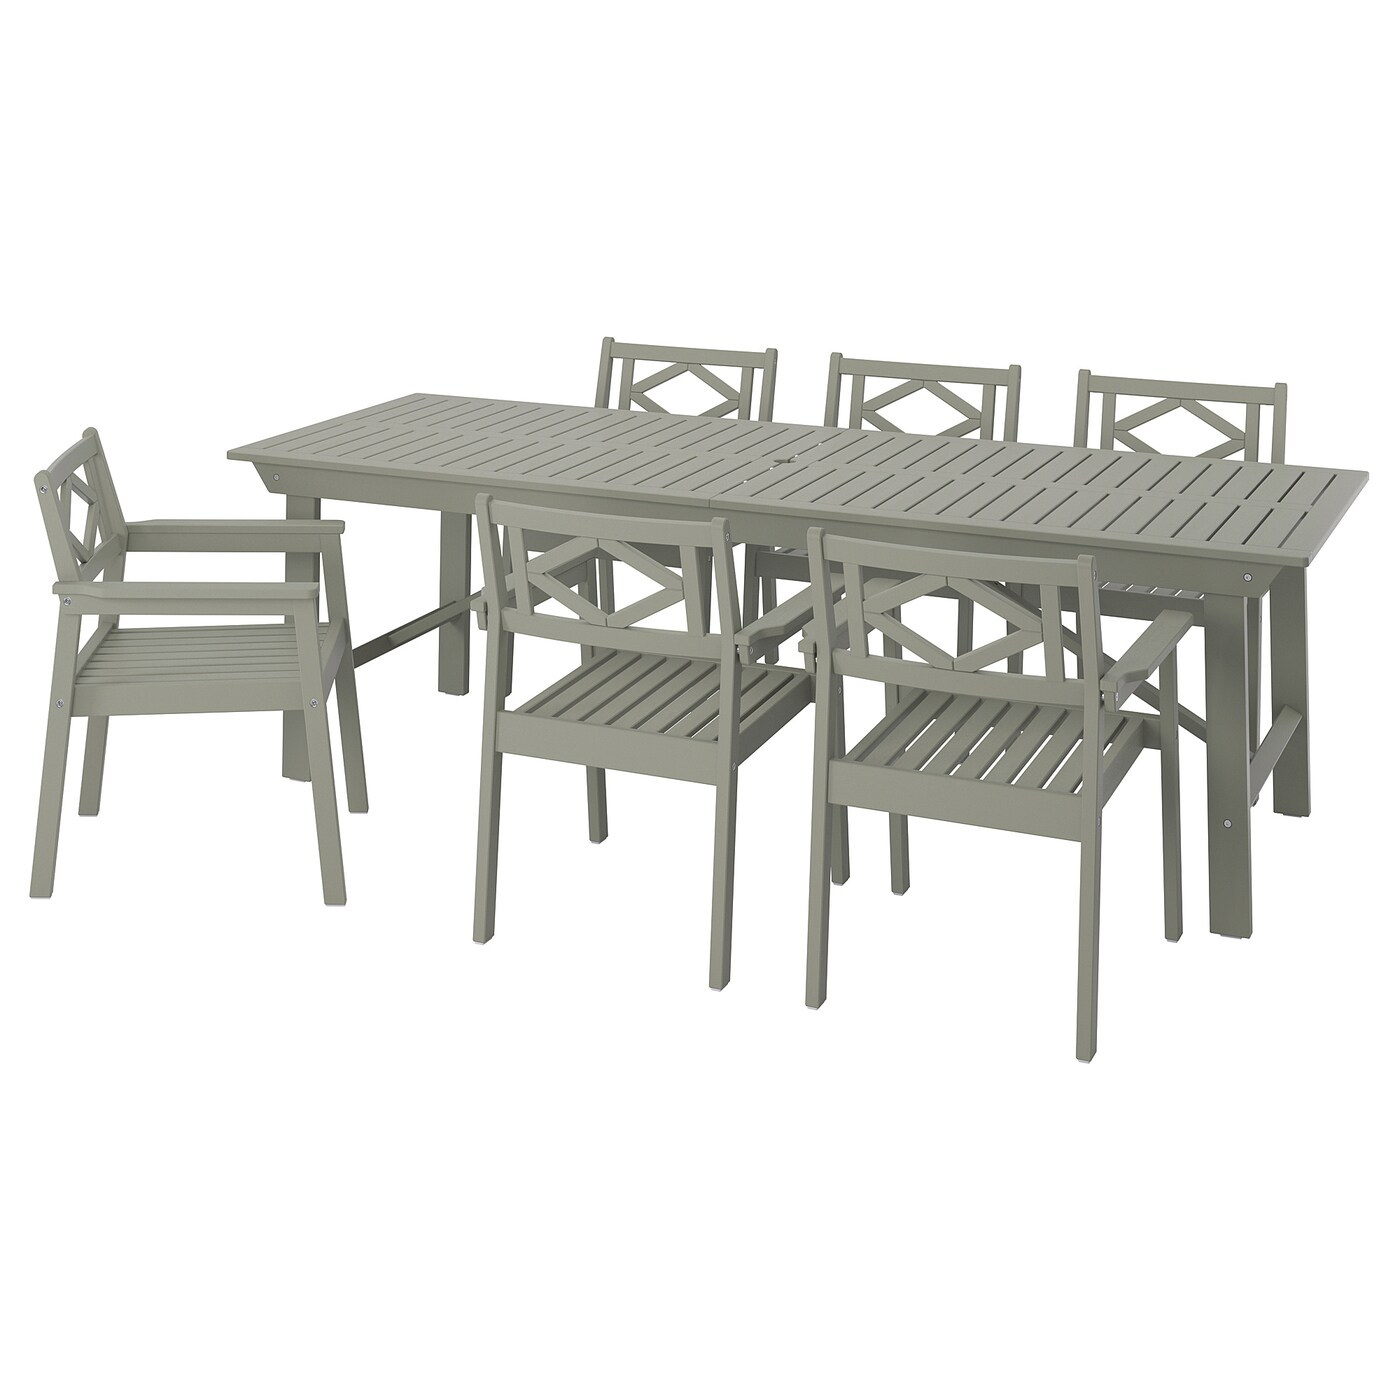 Garden Furniture Garden Furnitures Rattan Furniture Ikea - Garden Furniture Clearance Edinburgh